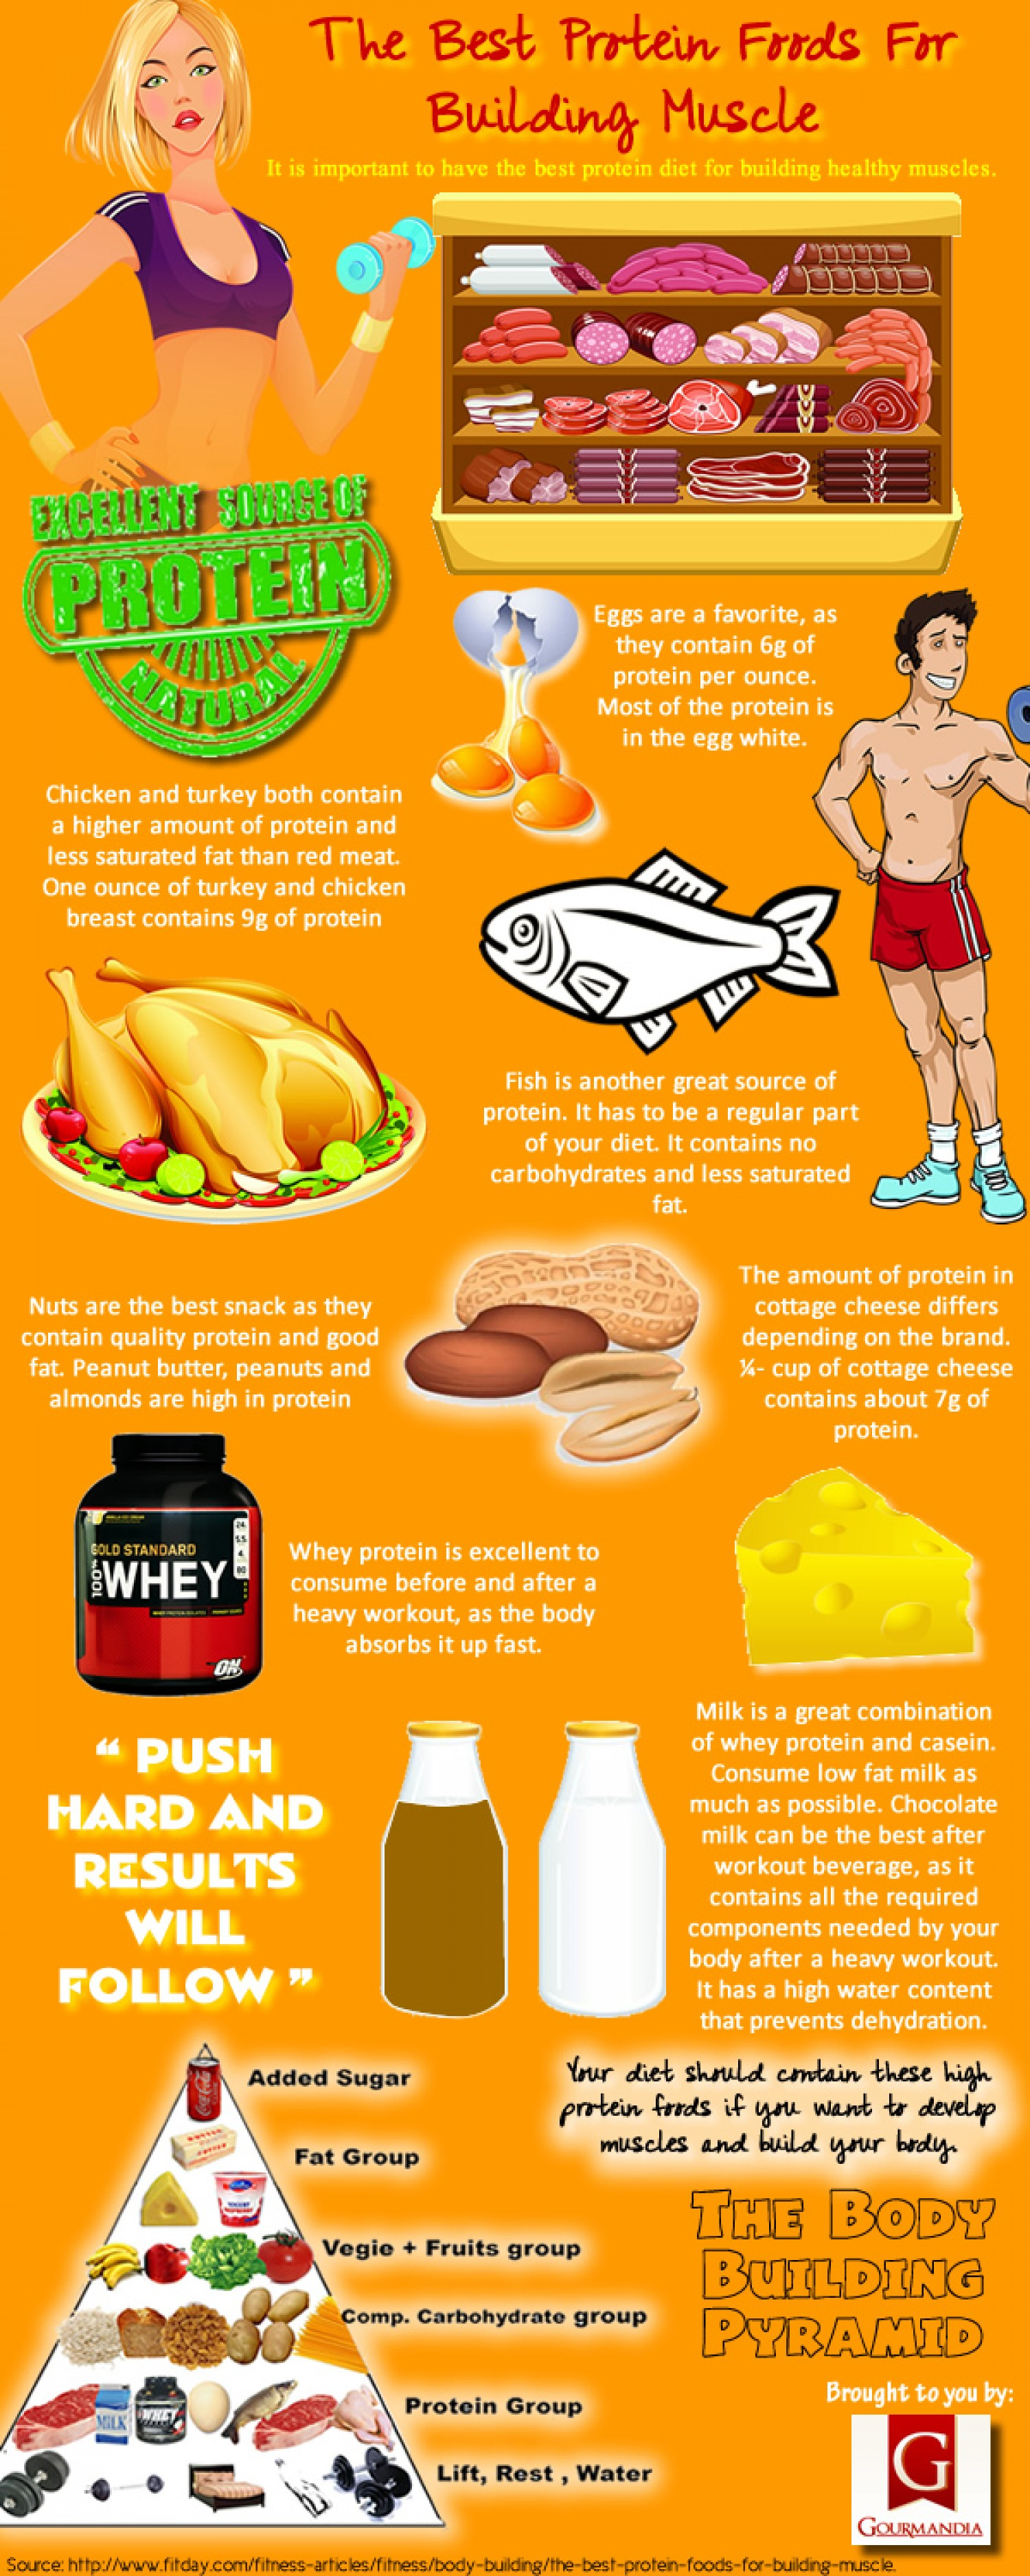 Are You Aware Of These Protein Rich Food Items To Build